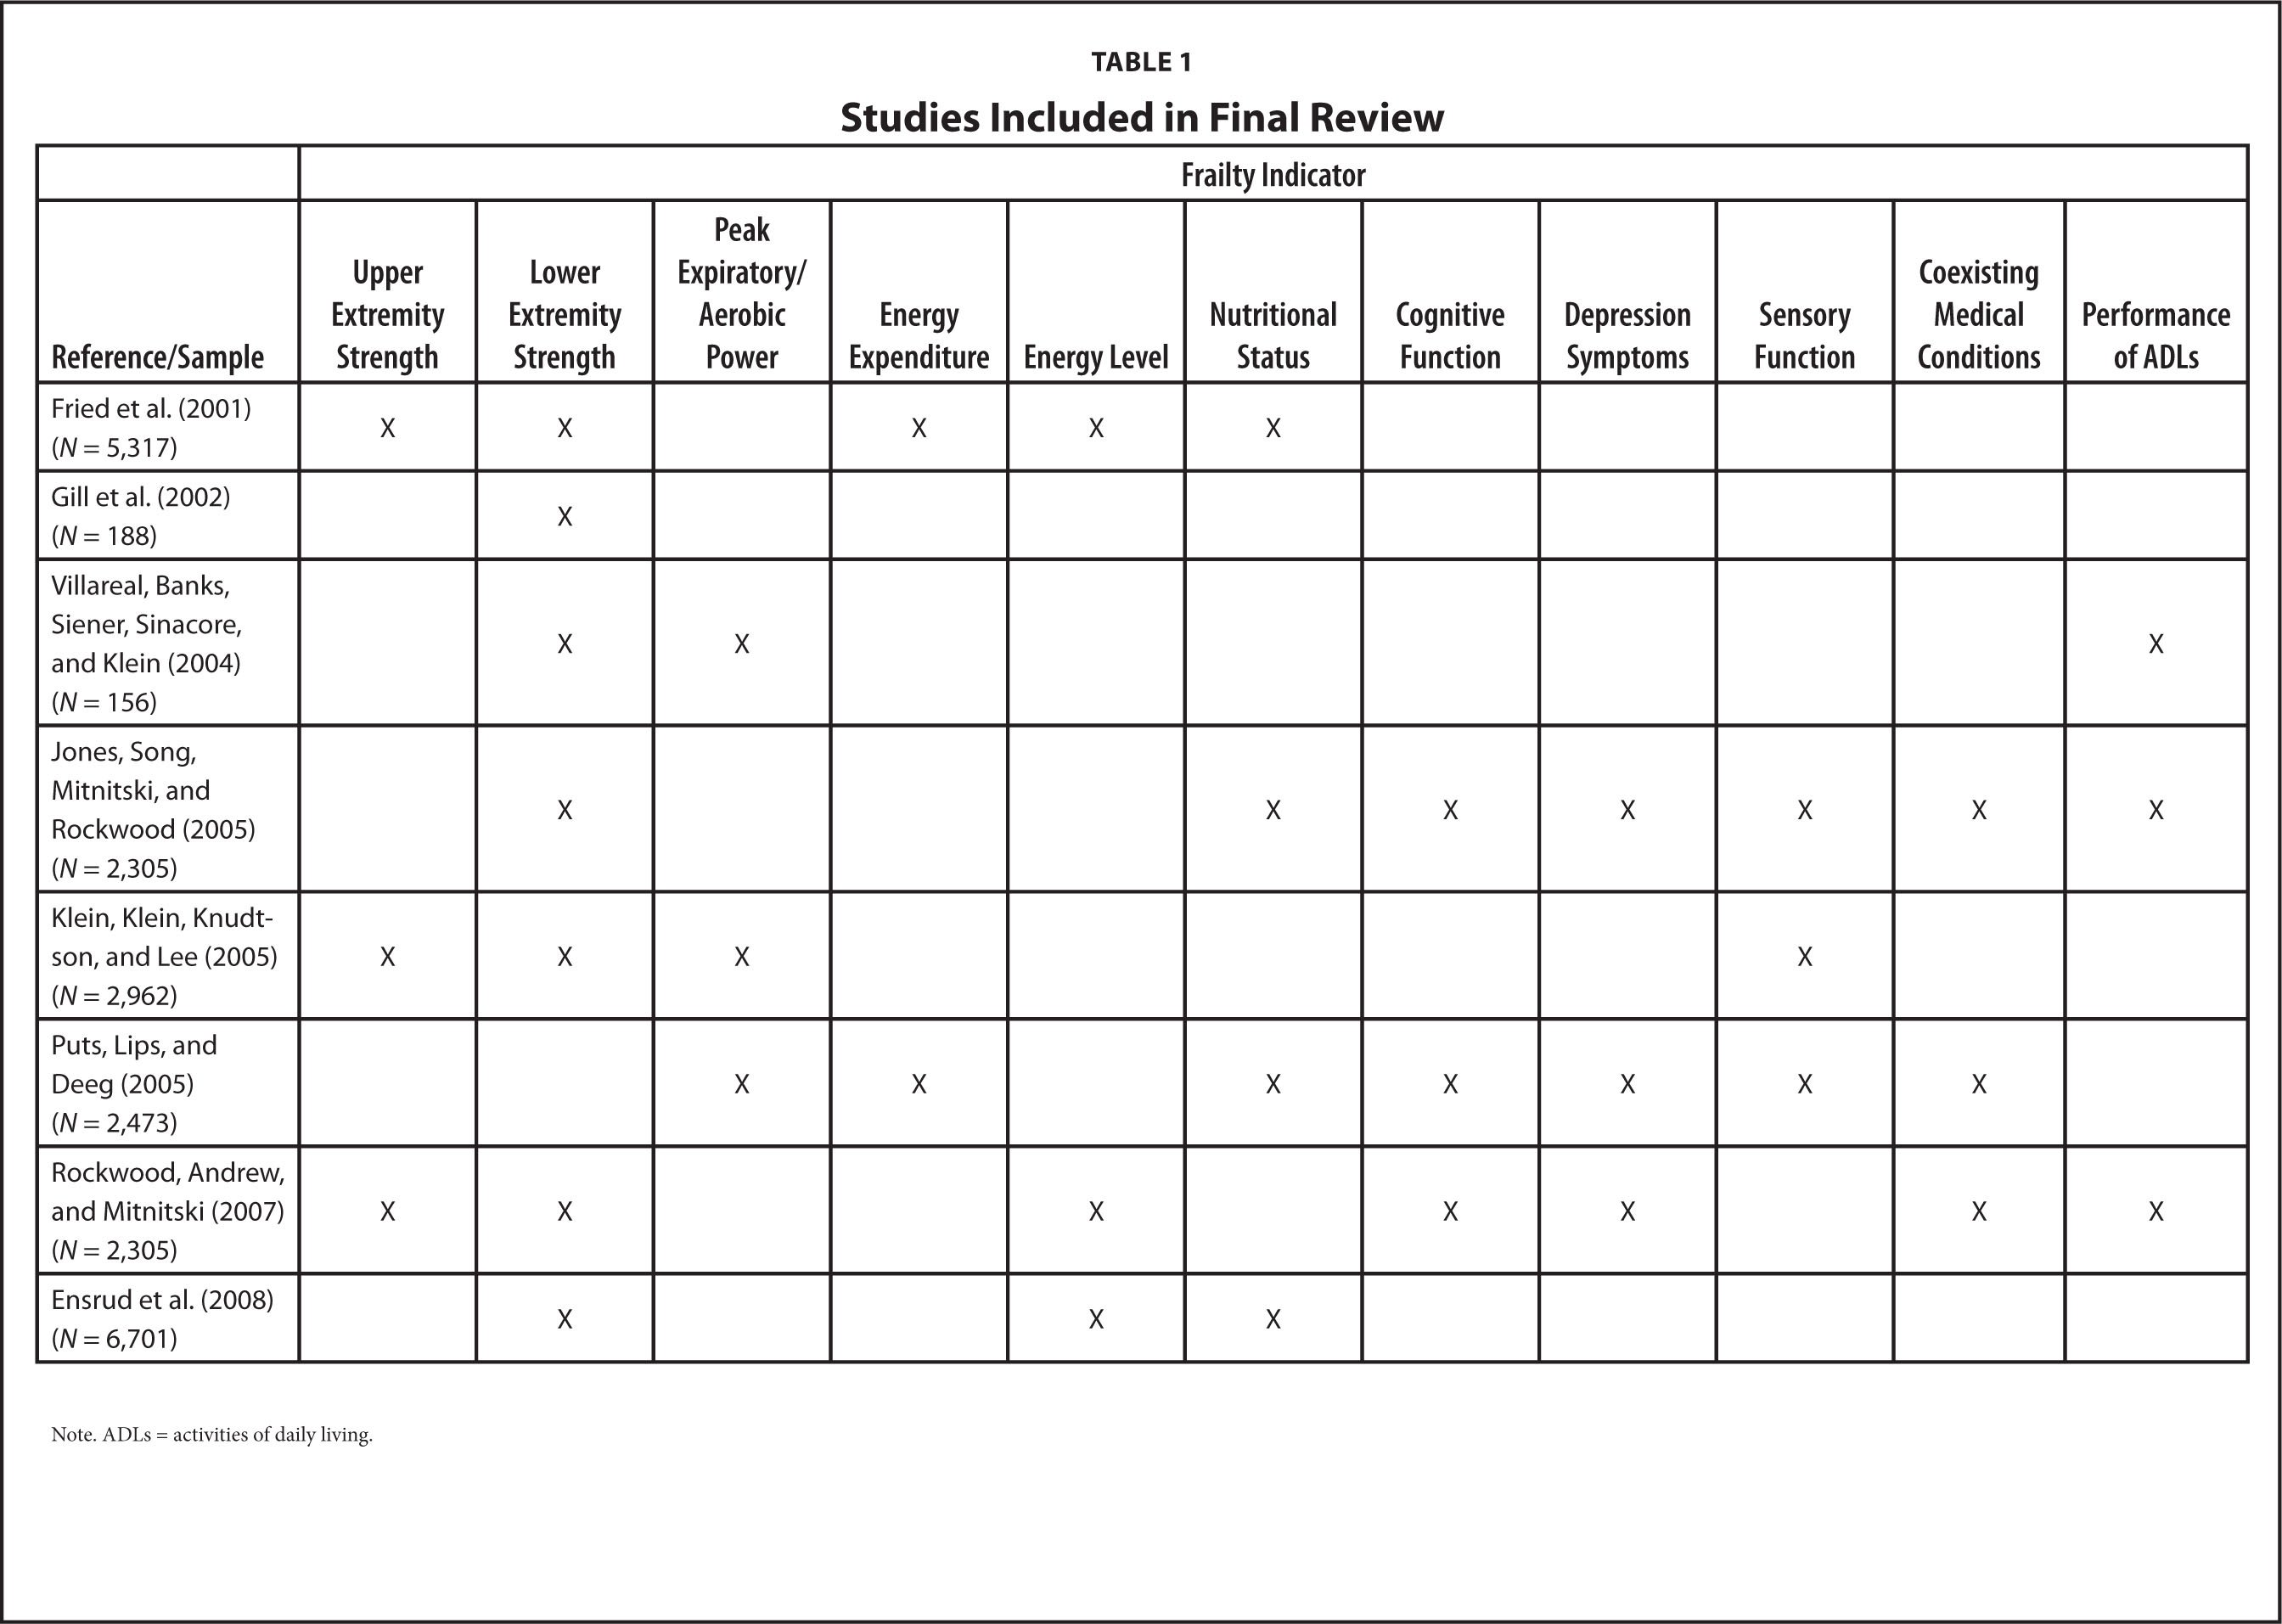 Studies Included in Final Review